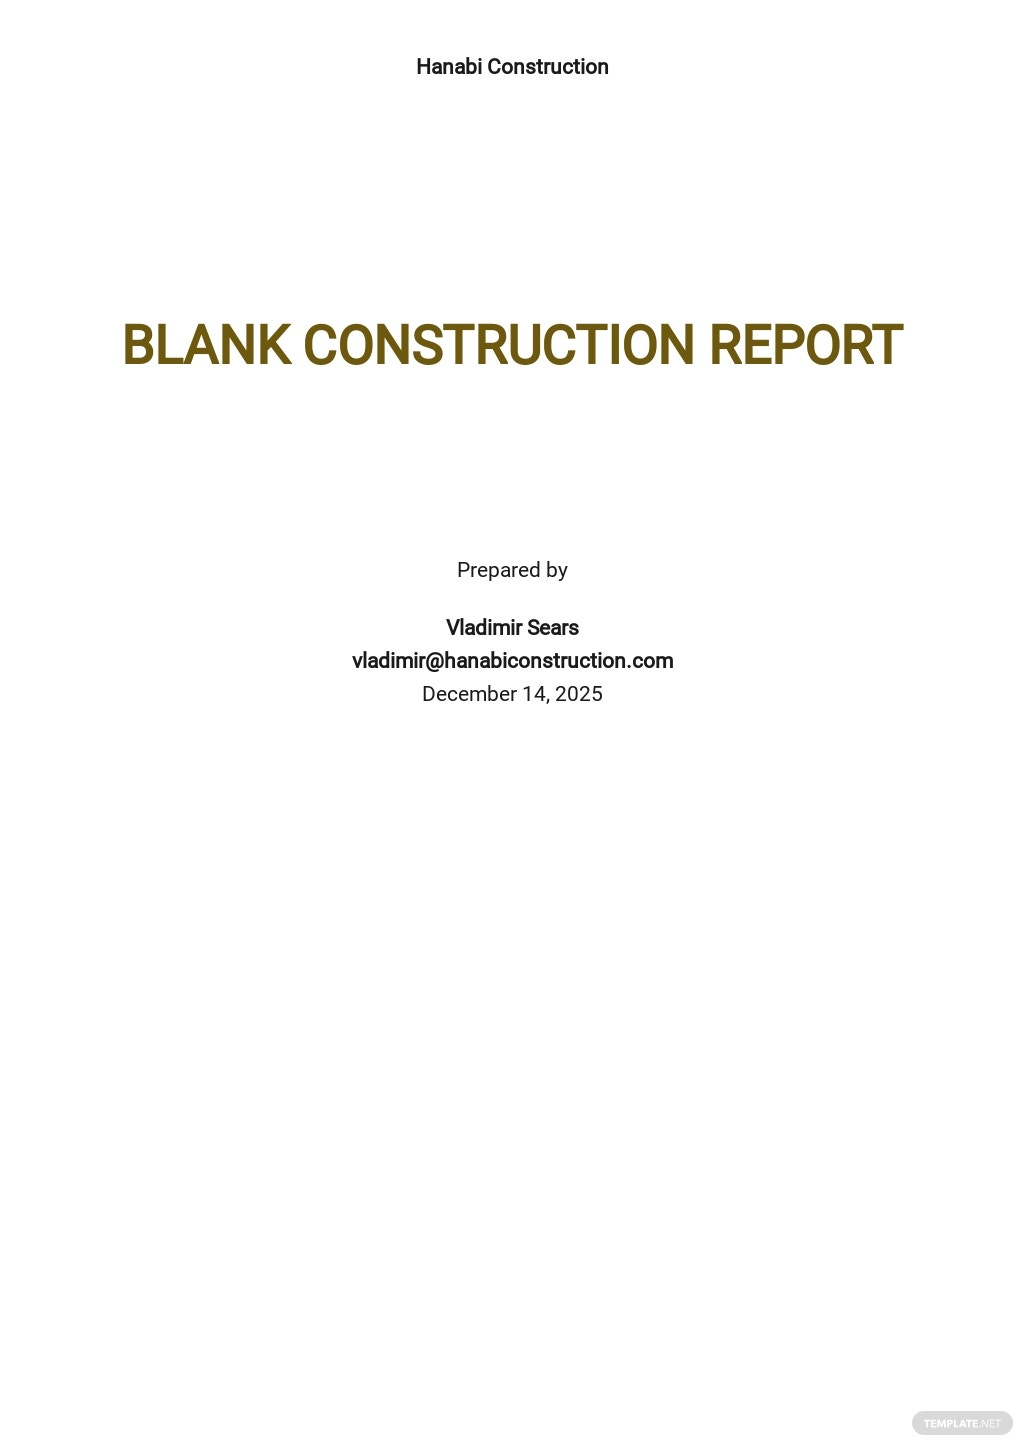 Blank Construction Report Template [Free PDF] - Google Docs, Word